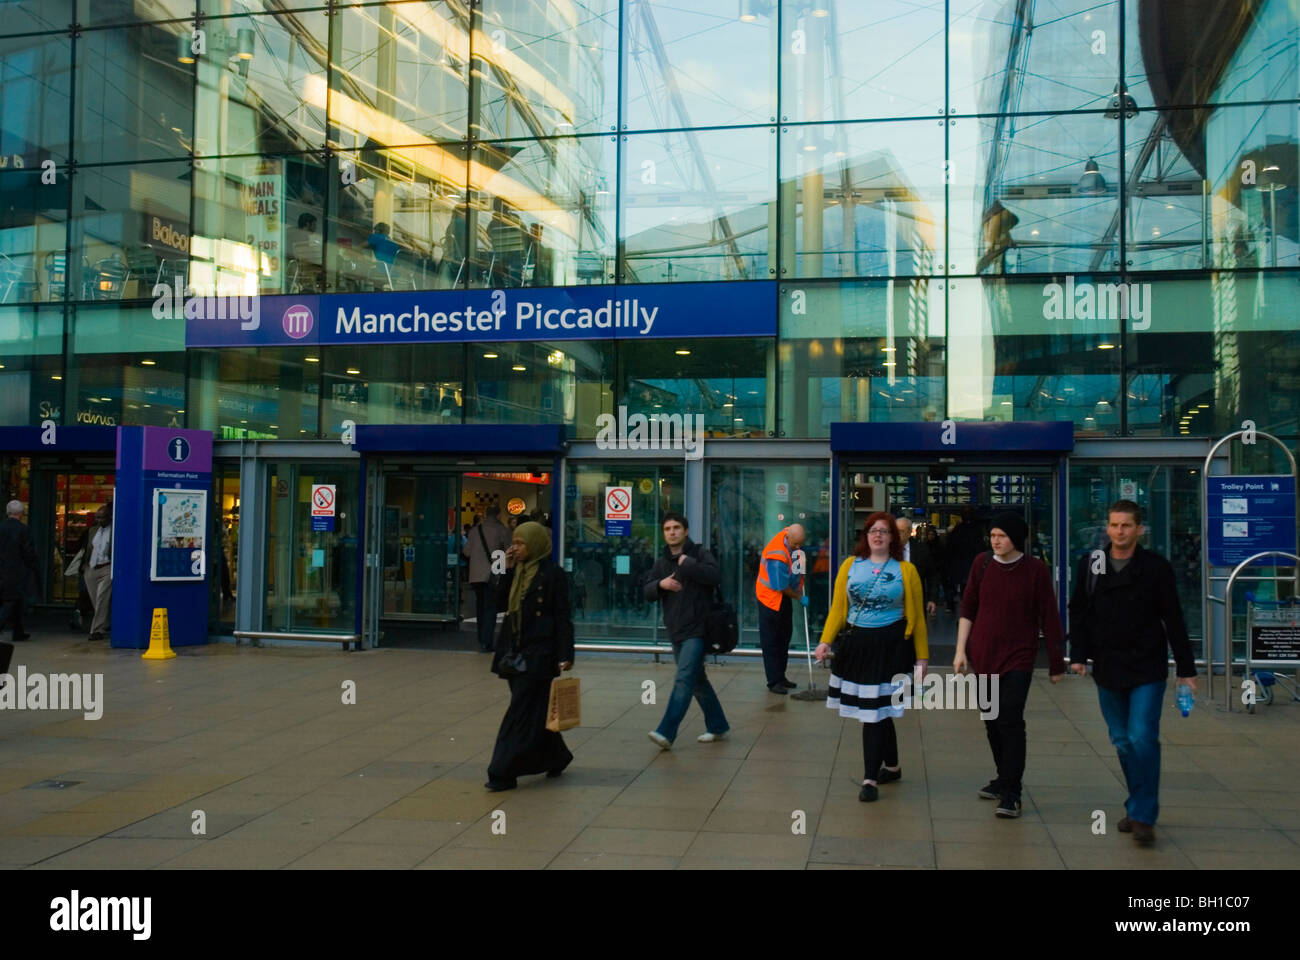 Piccadilly station central Manchester England UK Europe - Stock Image